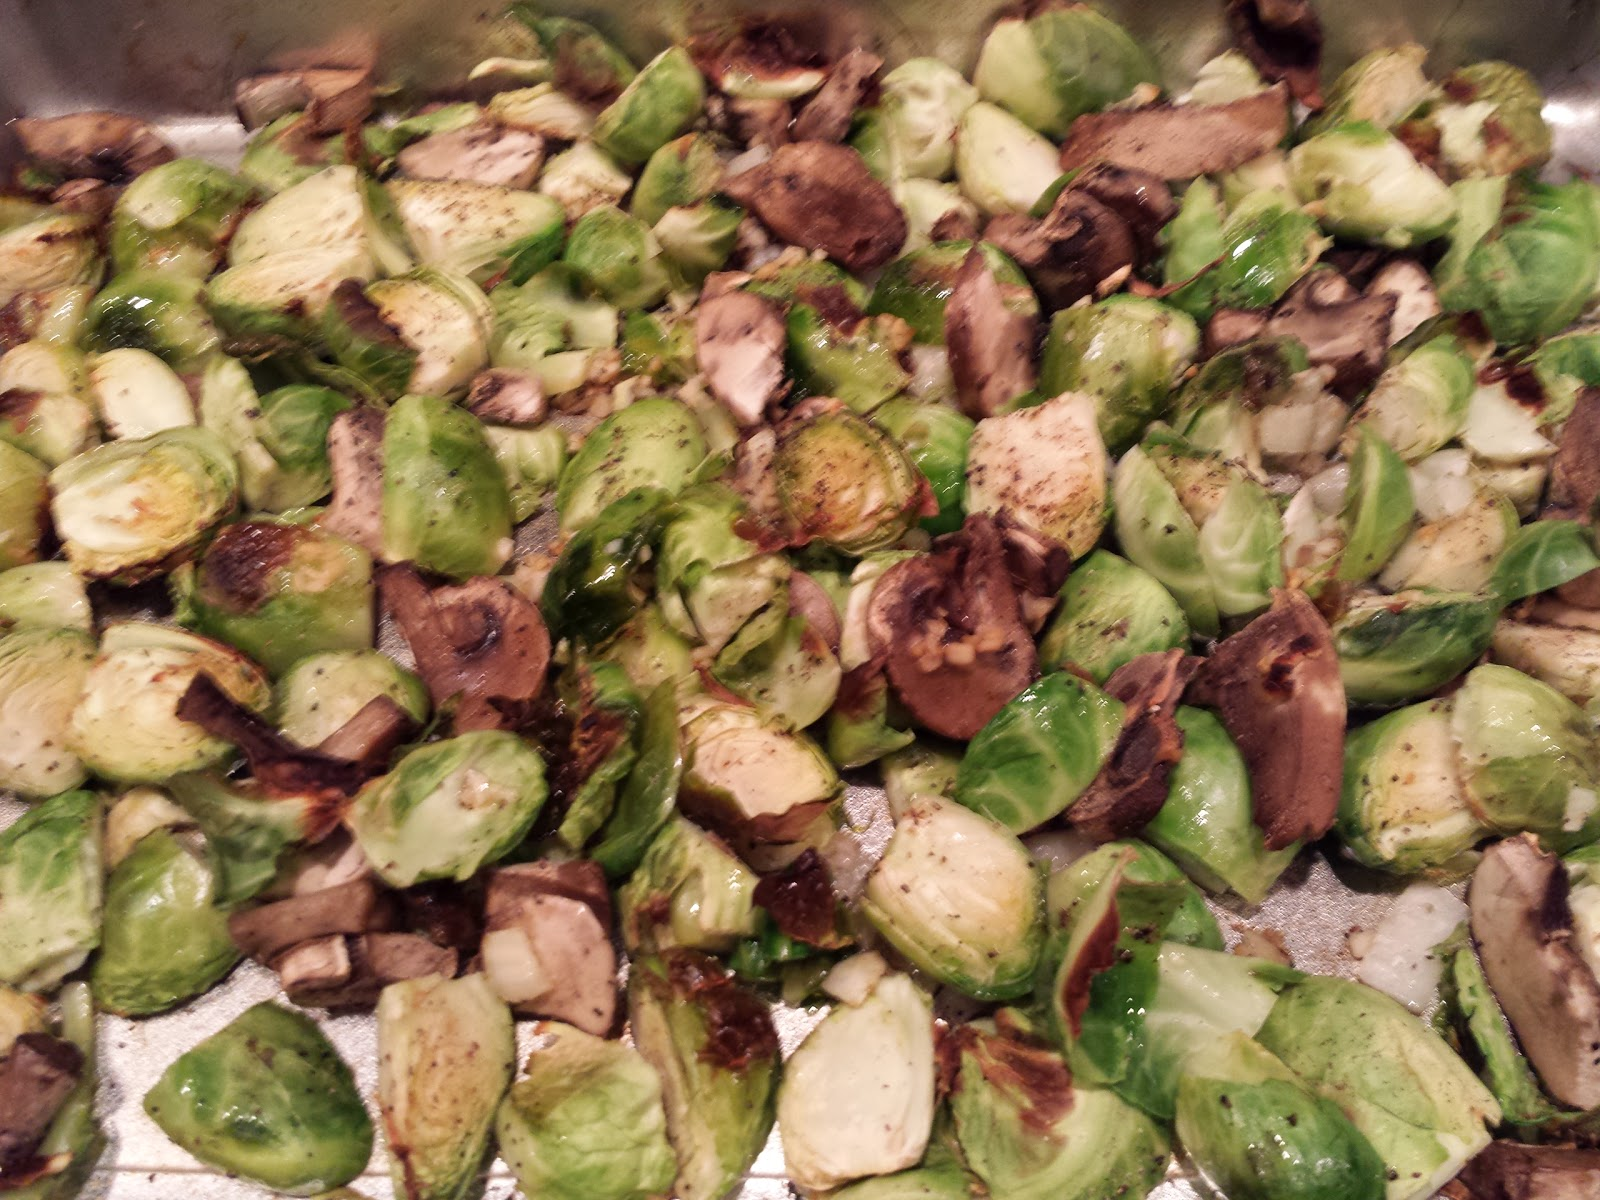 Deidra Penrose, brussel sprouts, mushrooms, clean eating, health and fitness coach, 7 star elite team beach body coach, healthy side dish recipe, healthy vegetables, weight loss, team beach body, 21 day fix recipe, t25 recipe, summer dish recipe, diet, beach body challenge